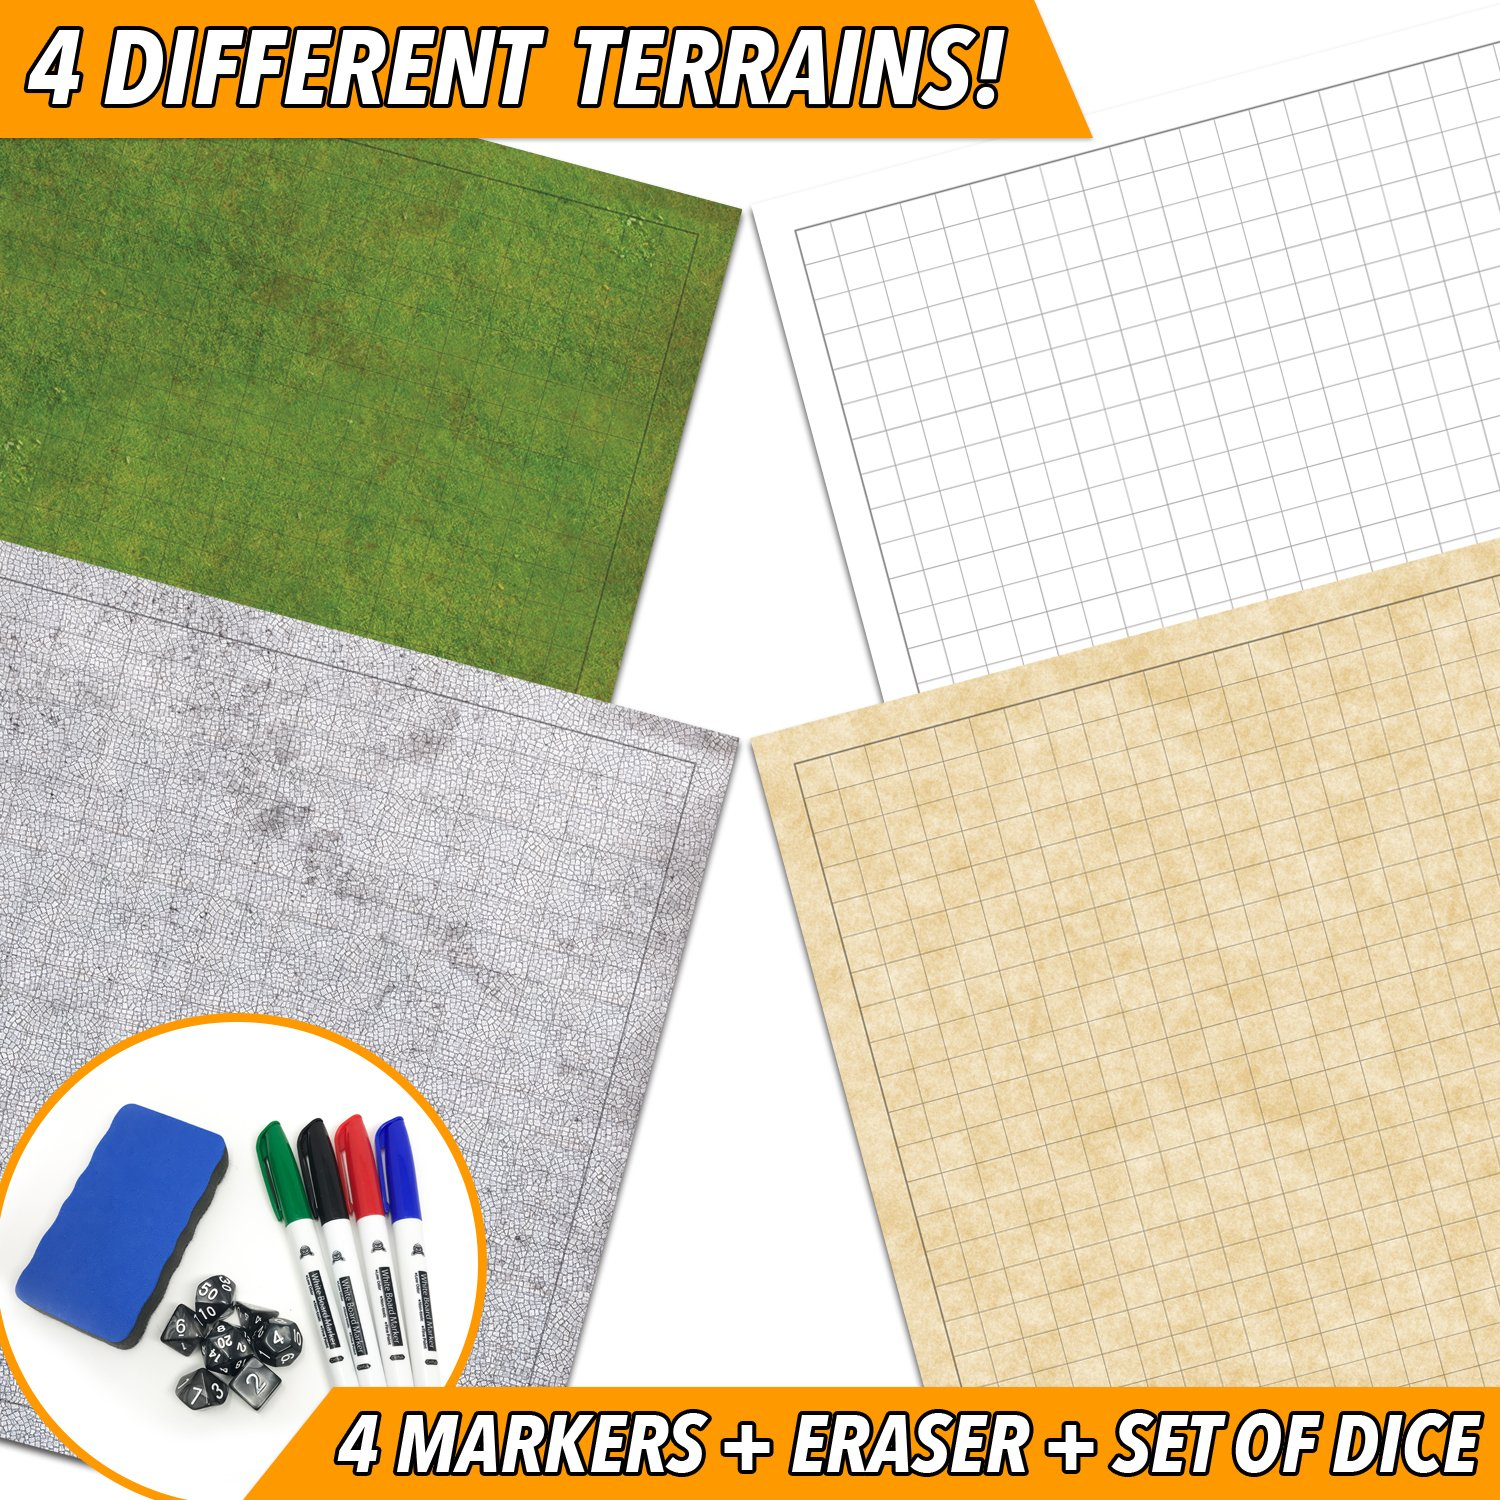 RPG Battle Game Mat - 2 Pack Dry Erase Double sided 36'' x 24'' (4 Terrains) + 4 Dry Erase Markers + 1 Eraser + 7pc Polyhedral Dice Set - Large Table Top Role Playing Map for Starters and Masters